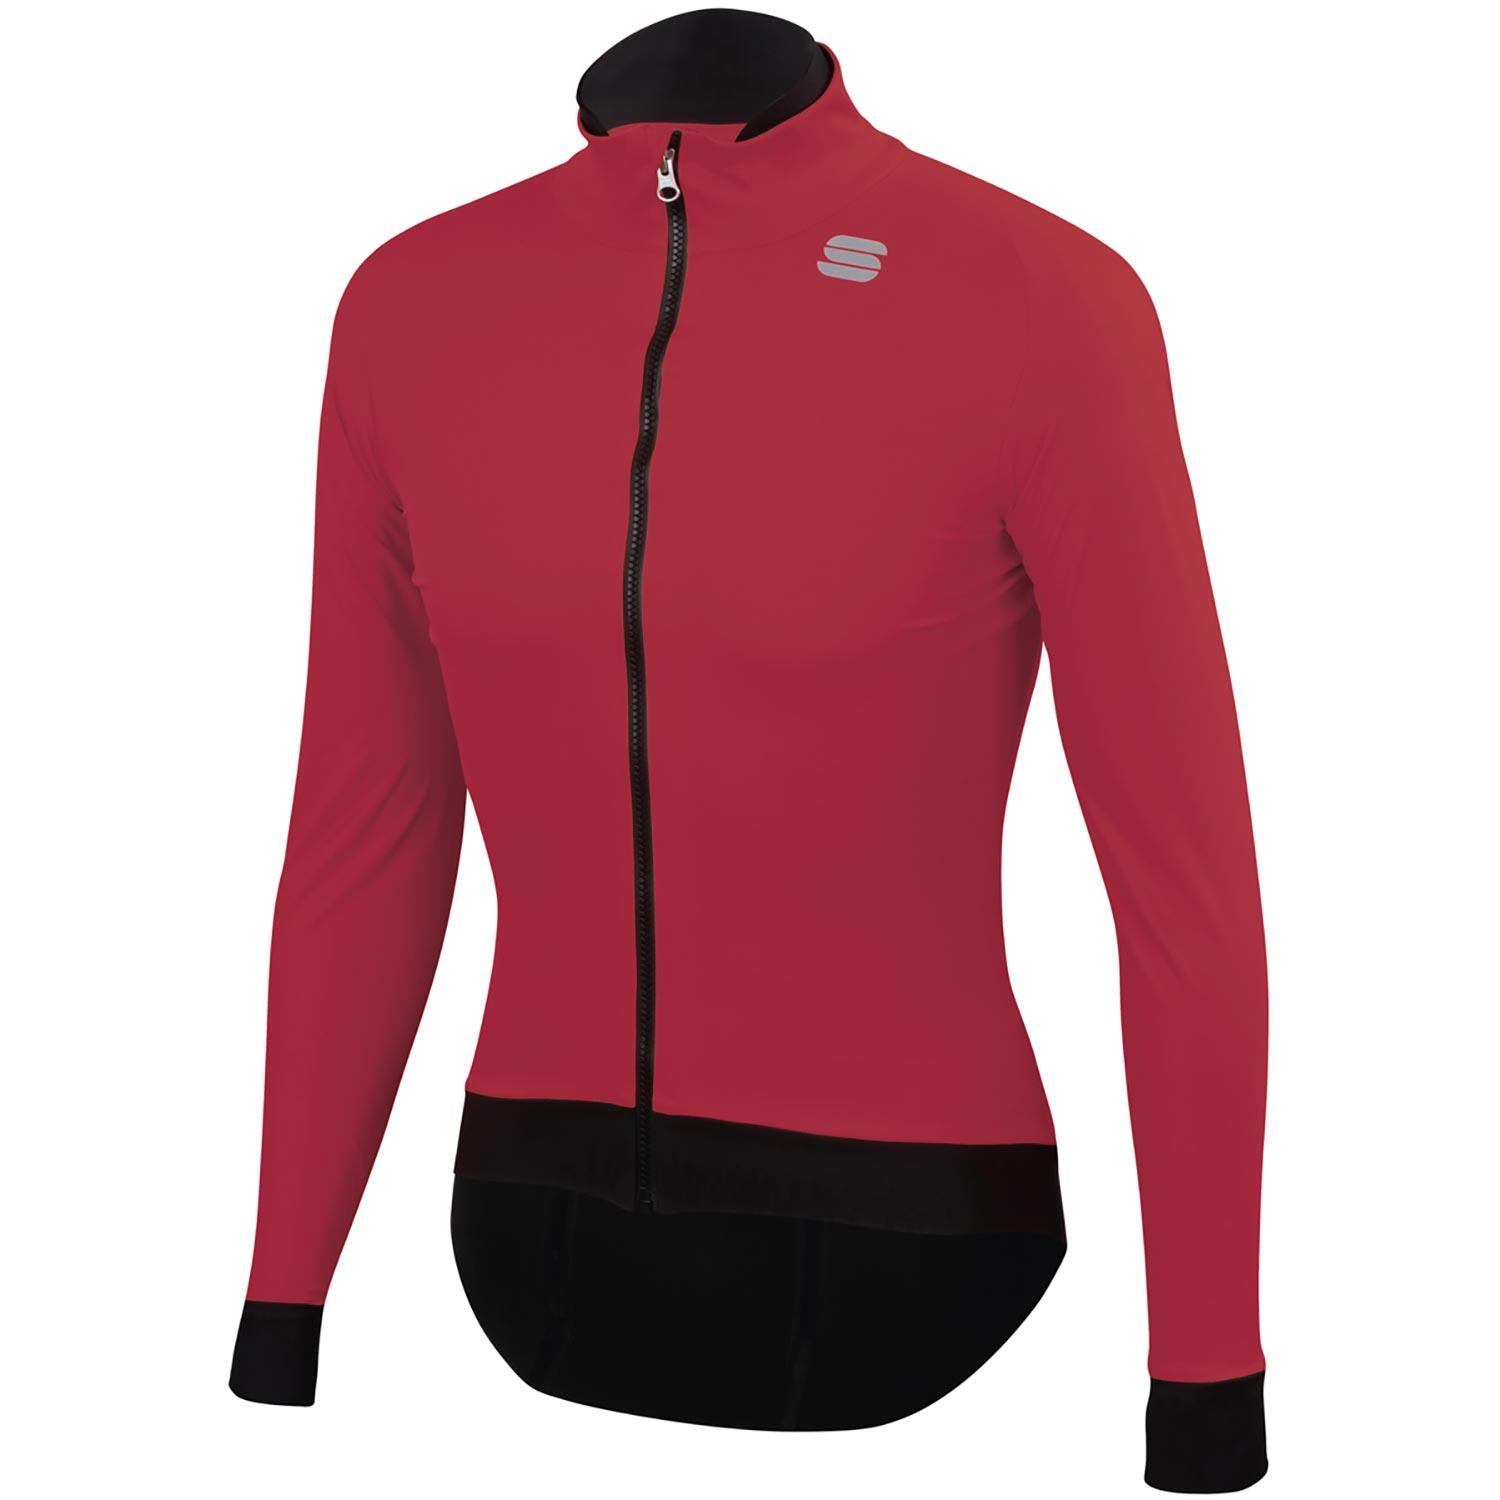 Sportful-Sportful Fiandre Pro Jacket-Red Rumba-S-SF195006222-saddleback-elite-performance-cycling